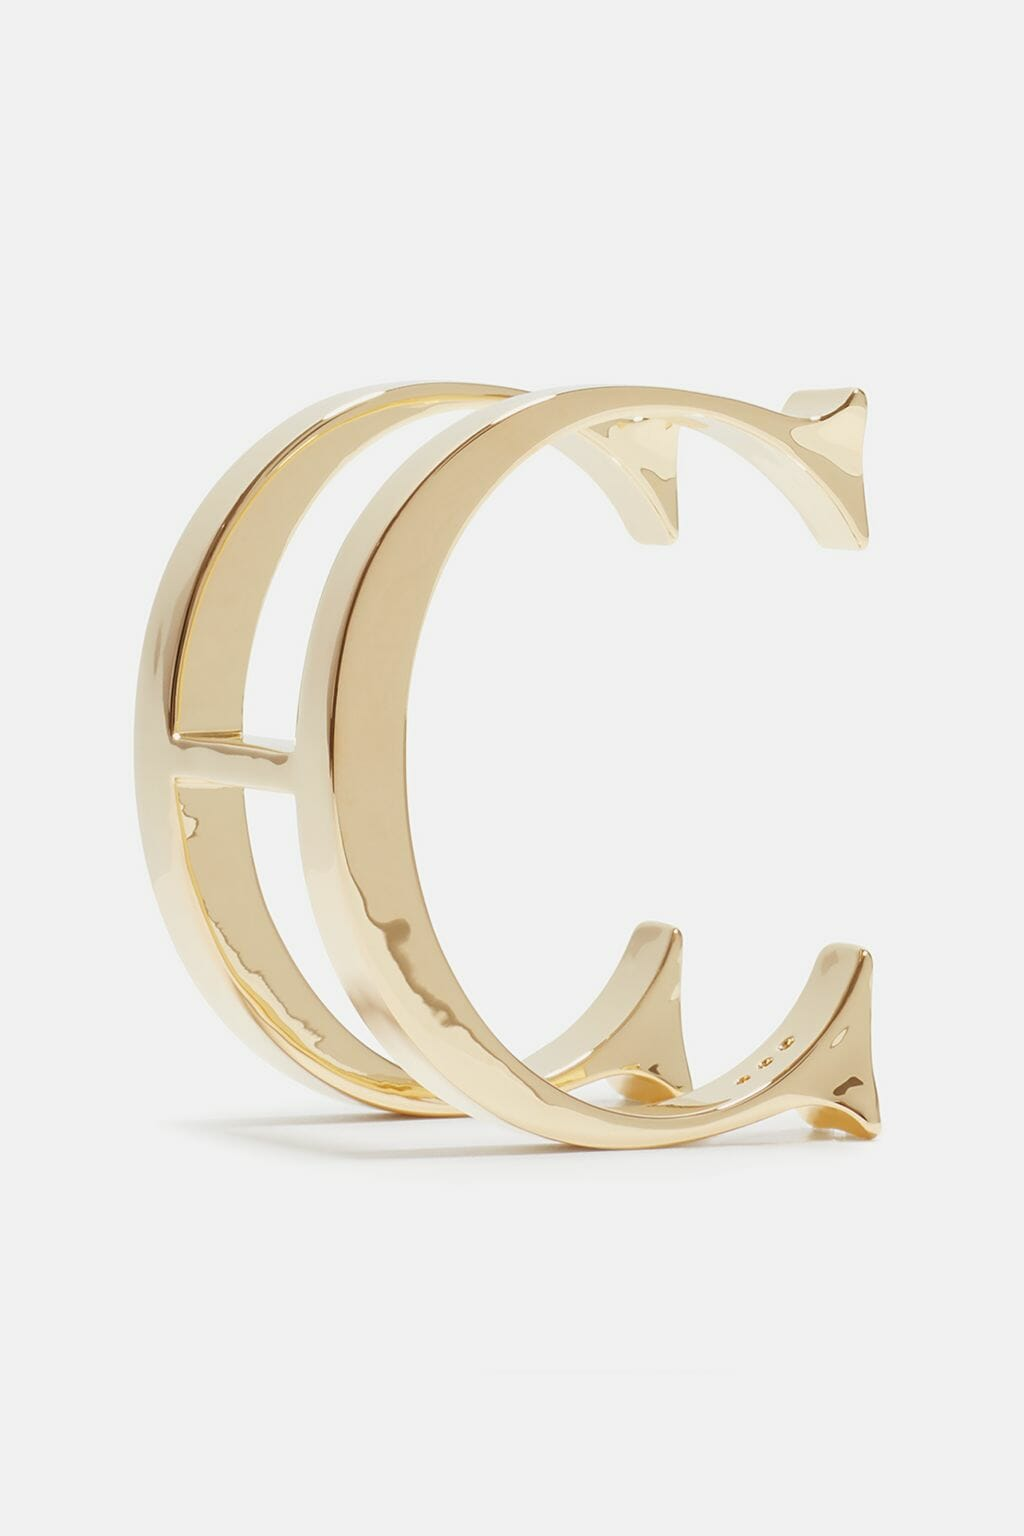 CH-Carolina-herrera-insignia-jewelry-look-10